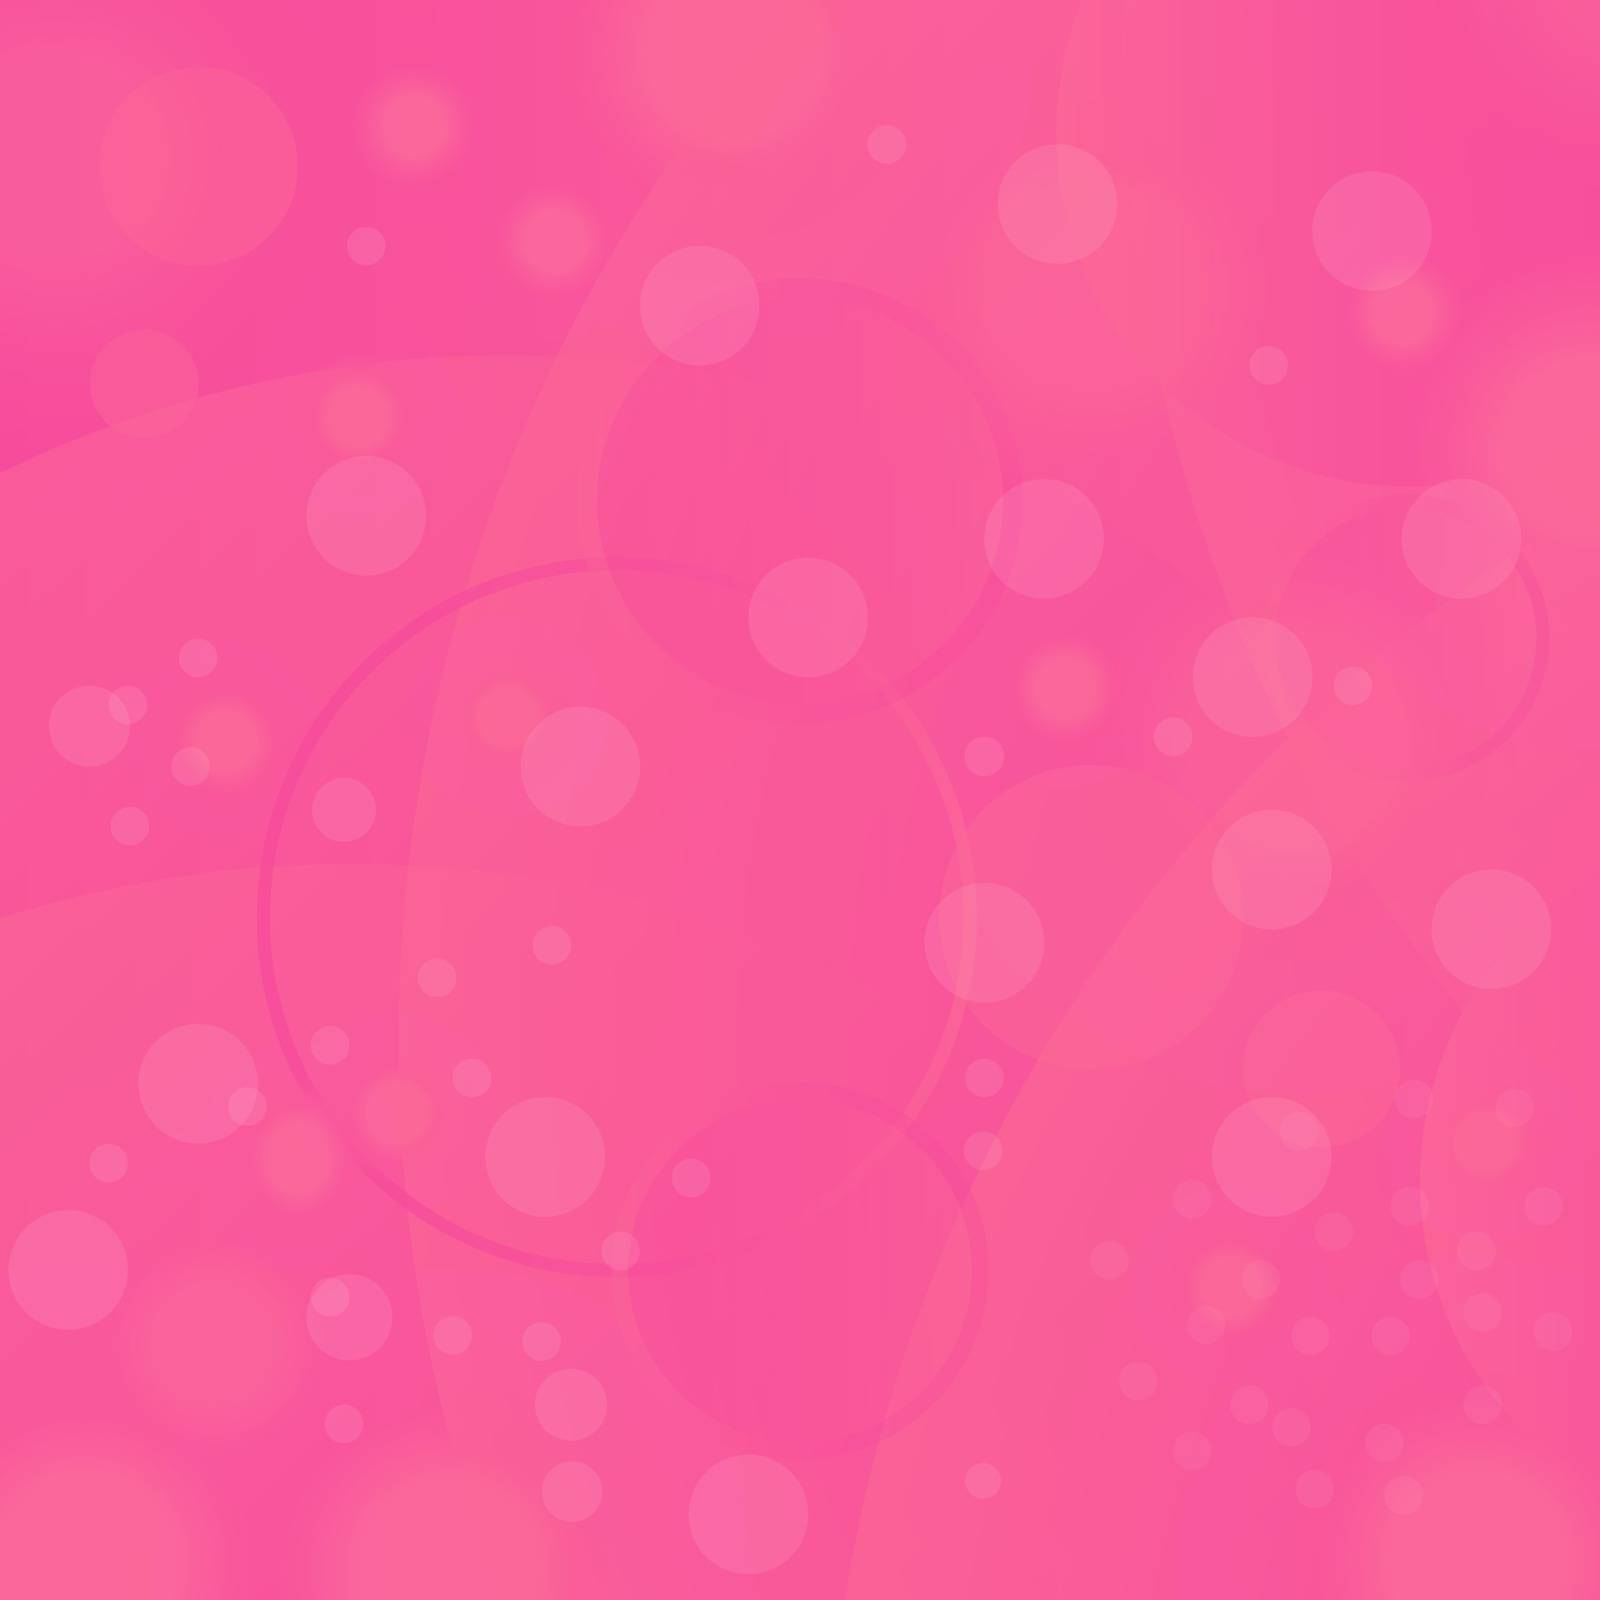 Pink Circle Background. Abstract Pink Blurred Pattern